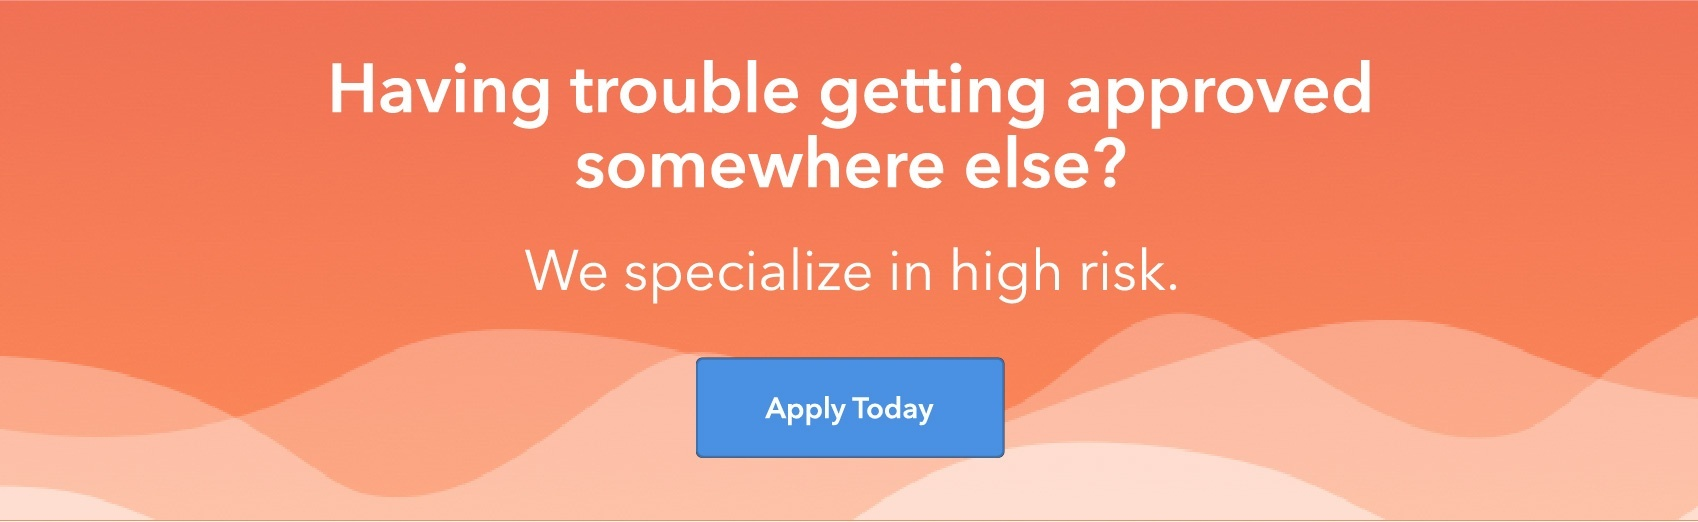 Having trouble getting approved somewhere else? We specialize in high risk. Apply today.